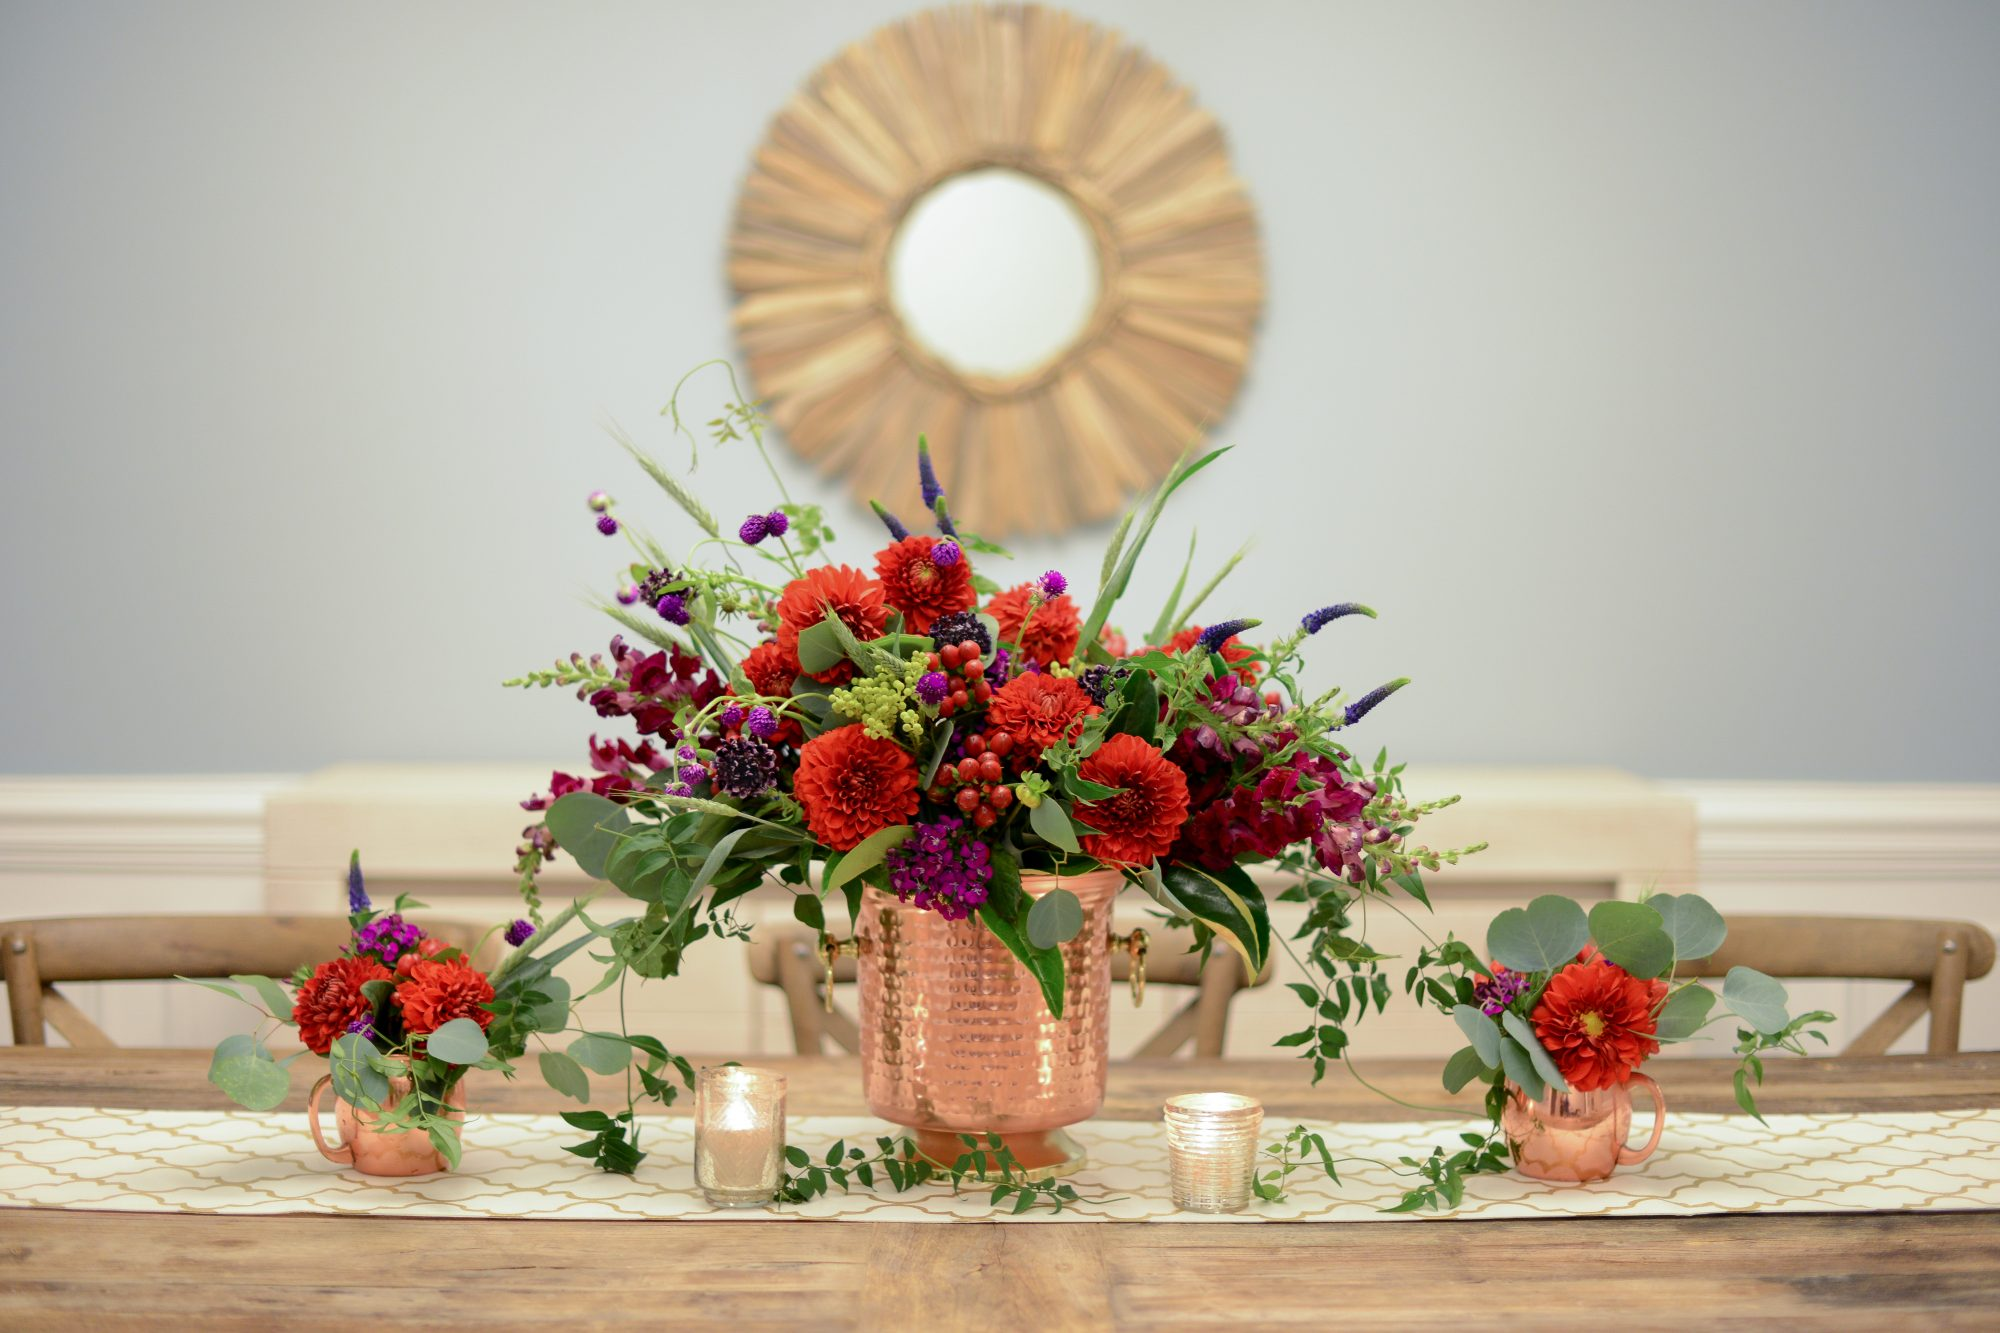 Find a Unique Vase. Lily Greenthumb Flower Arrangement & 10 Thanksgiving Flower Arrangement Ideas From the Pros